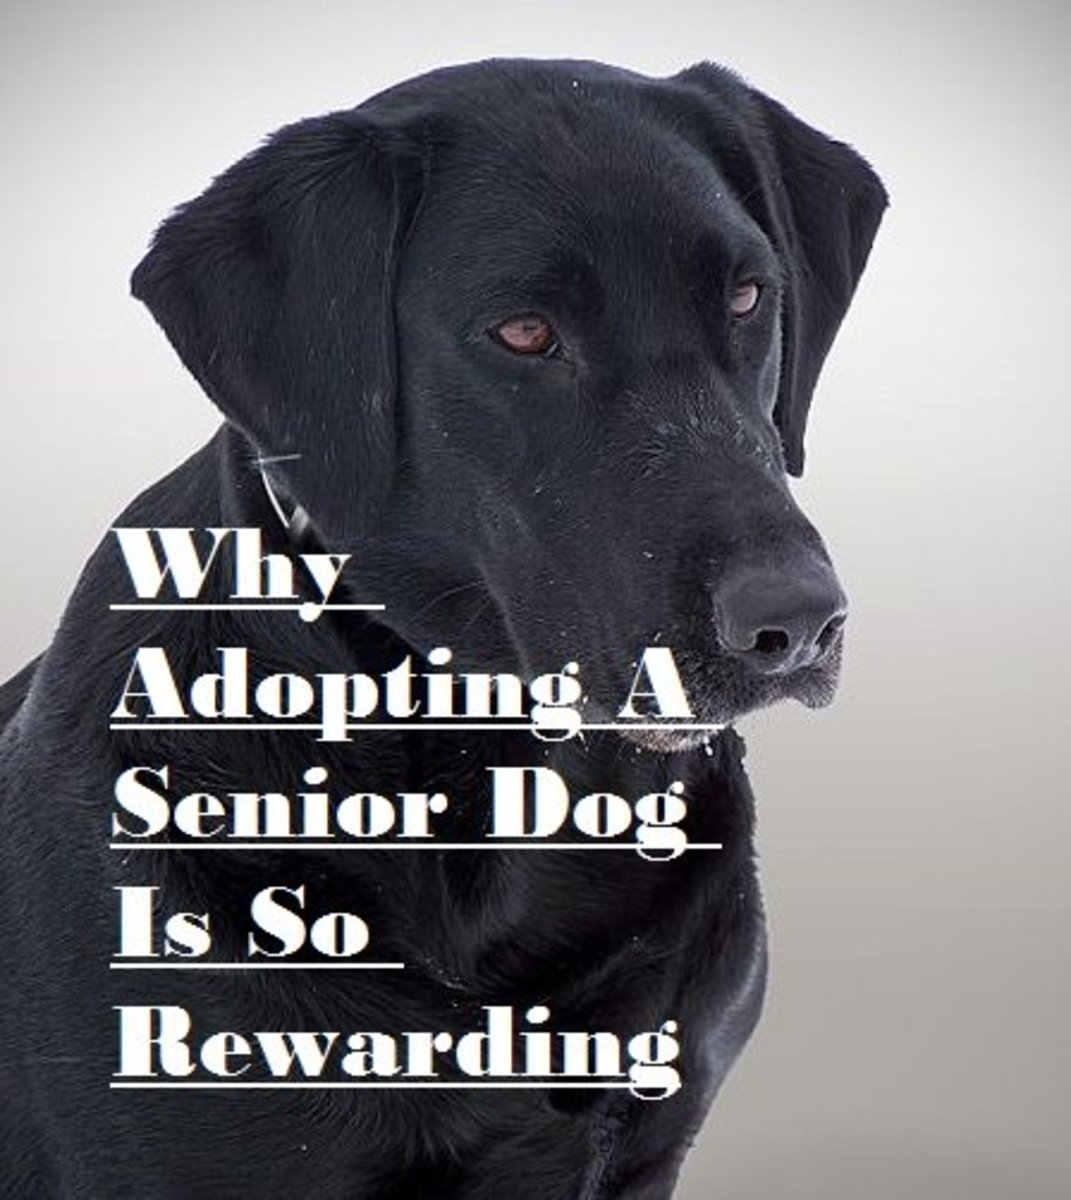 Why I Adopted a Senior Dog and Why You Should Too